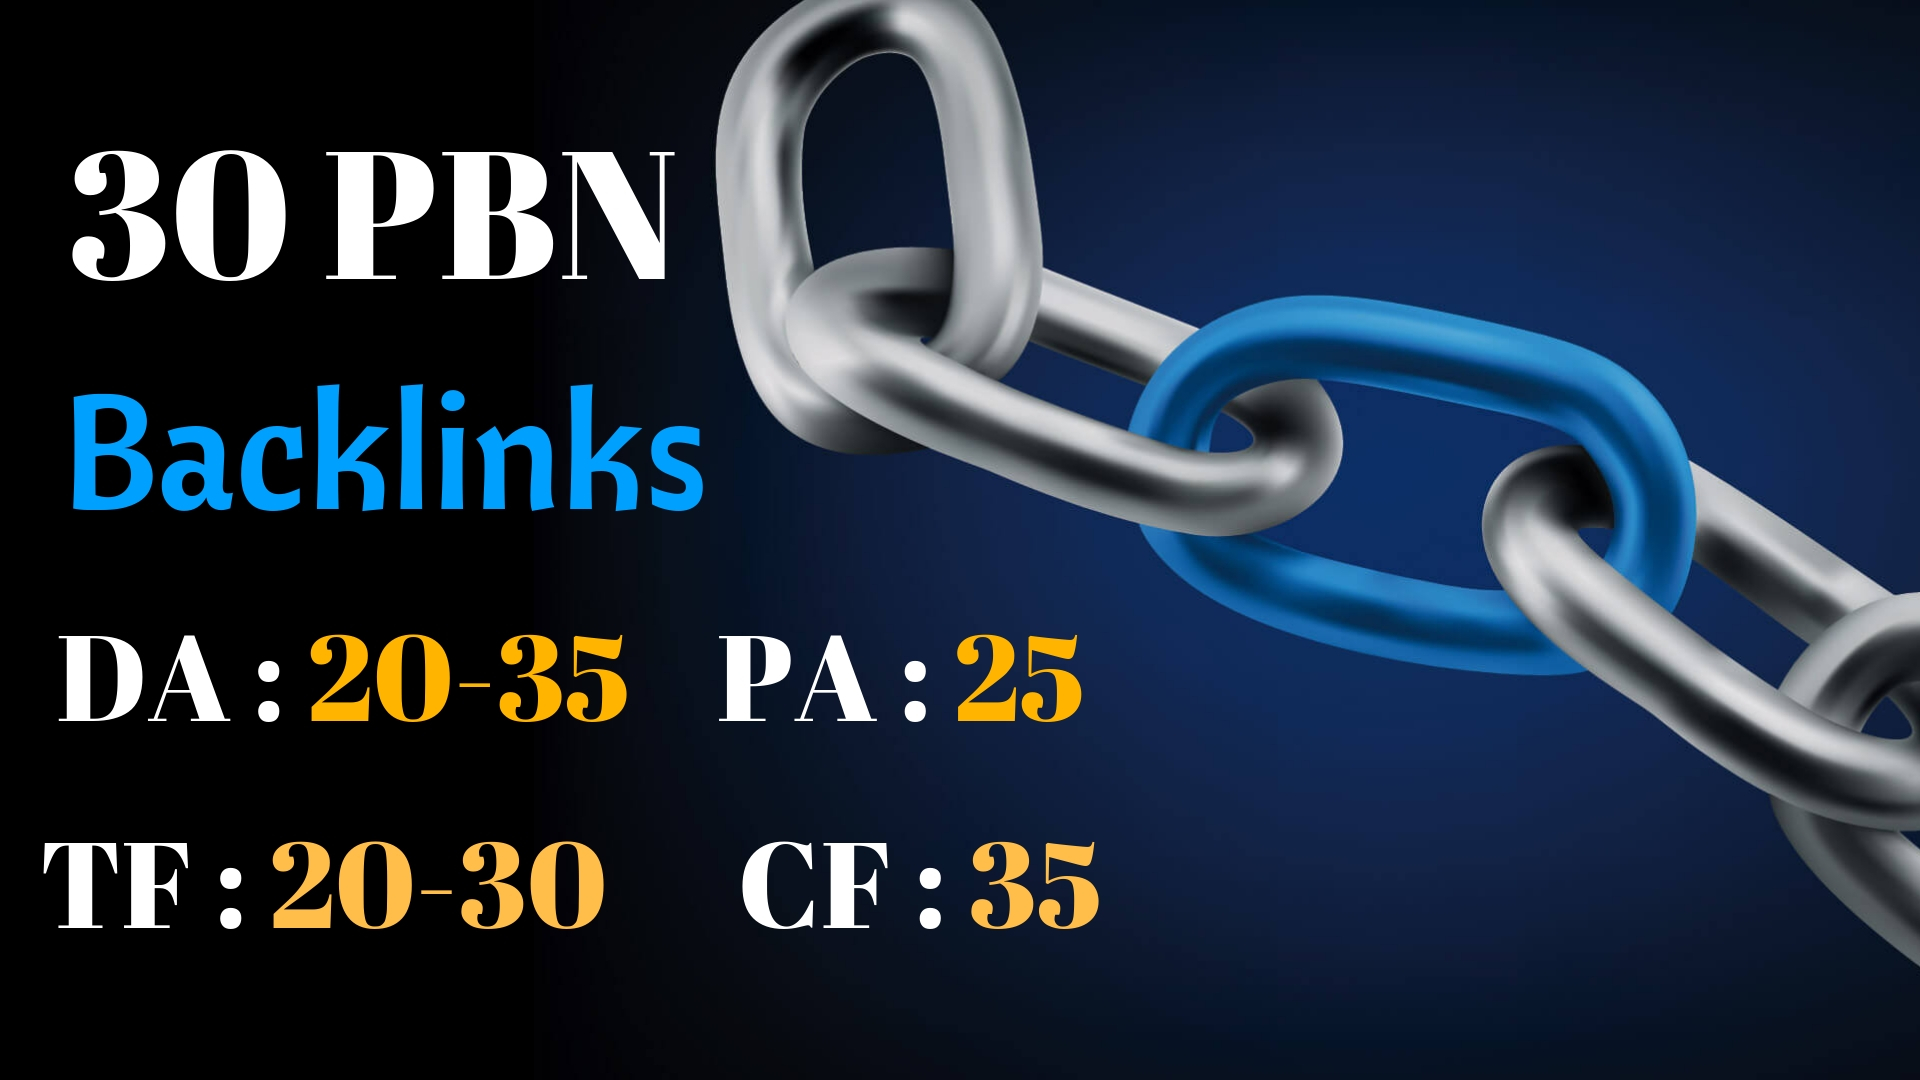 30 Pbn Backlinks Of Da 40 And Pa 35 To Rank No1